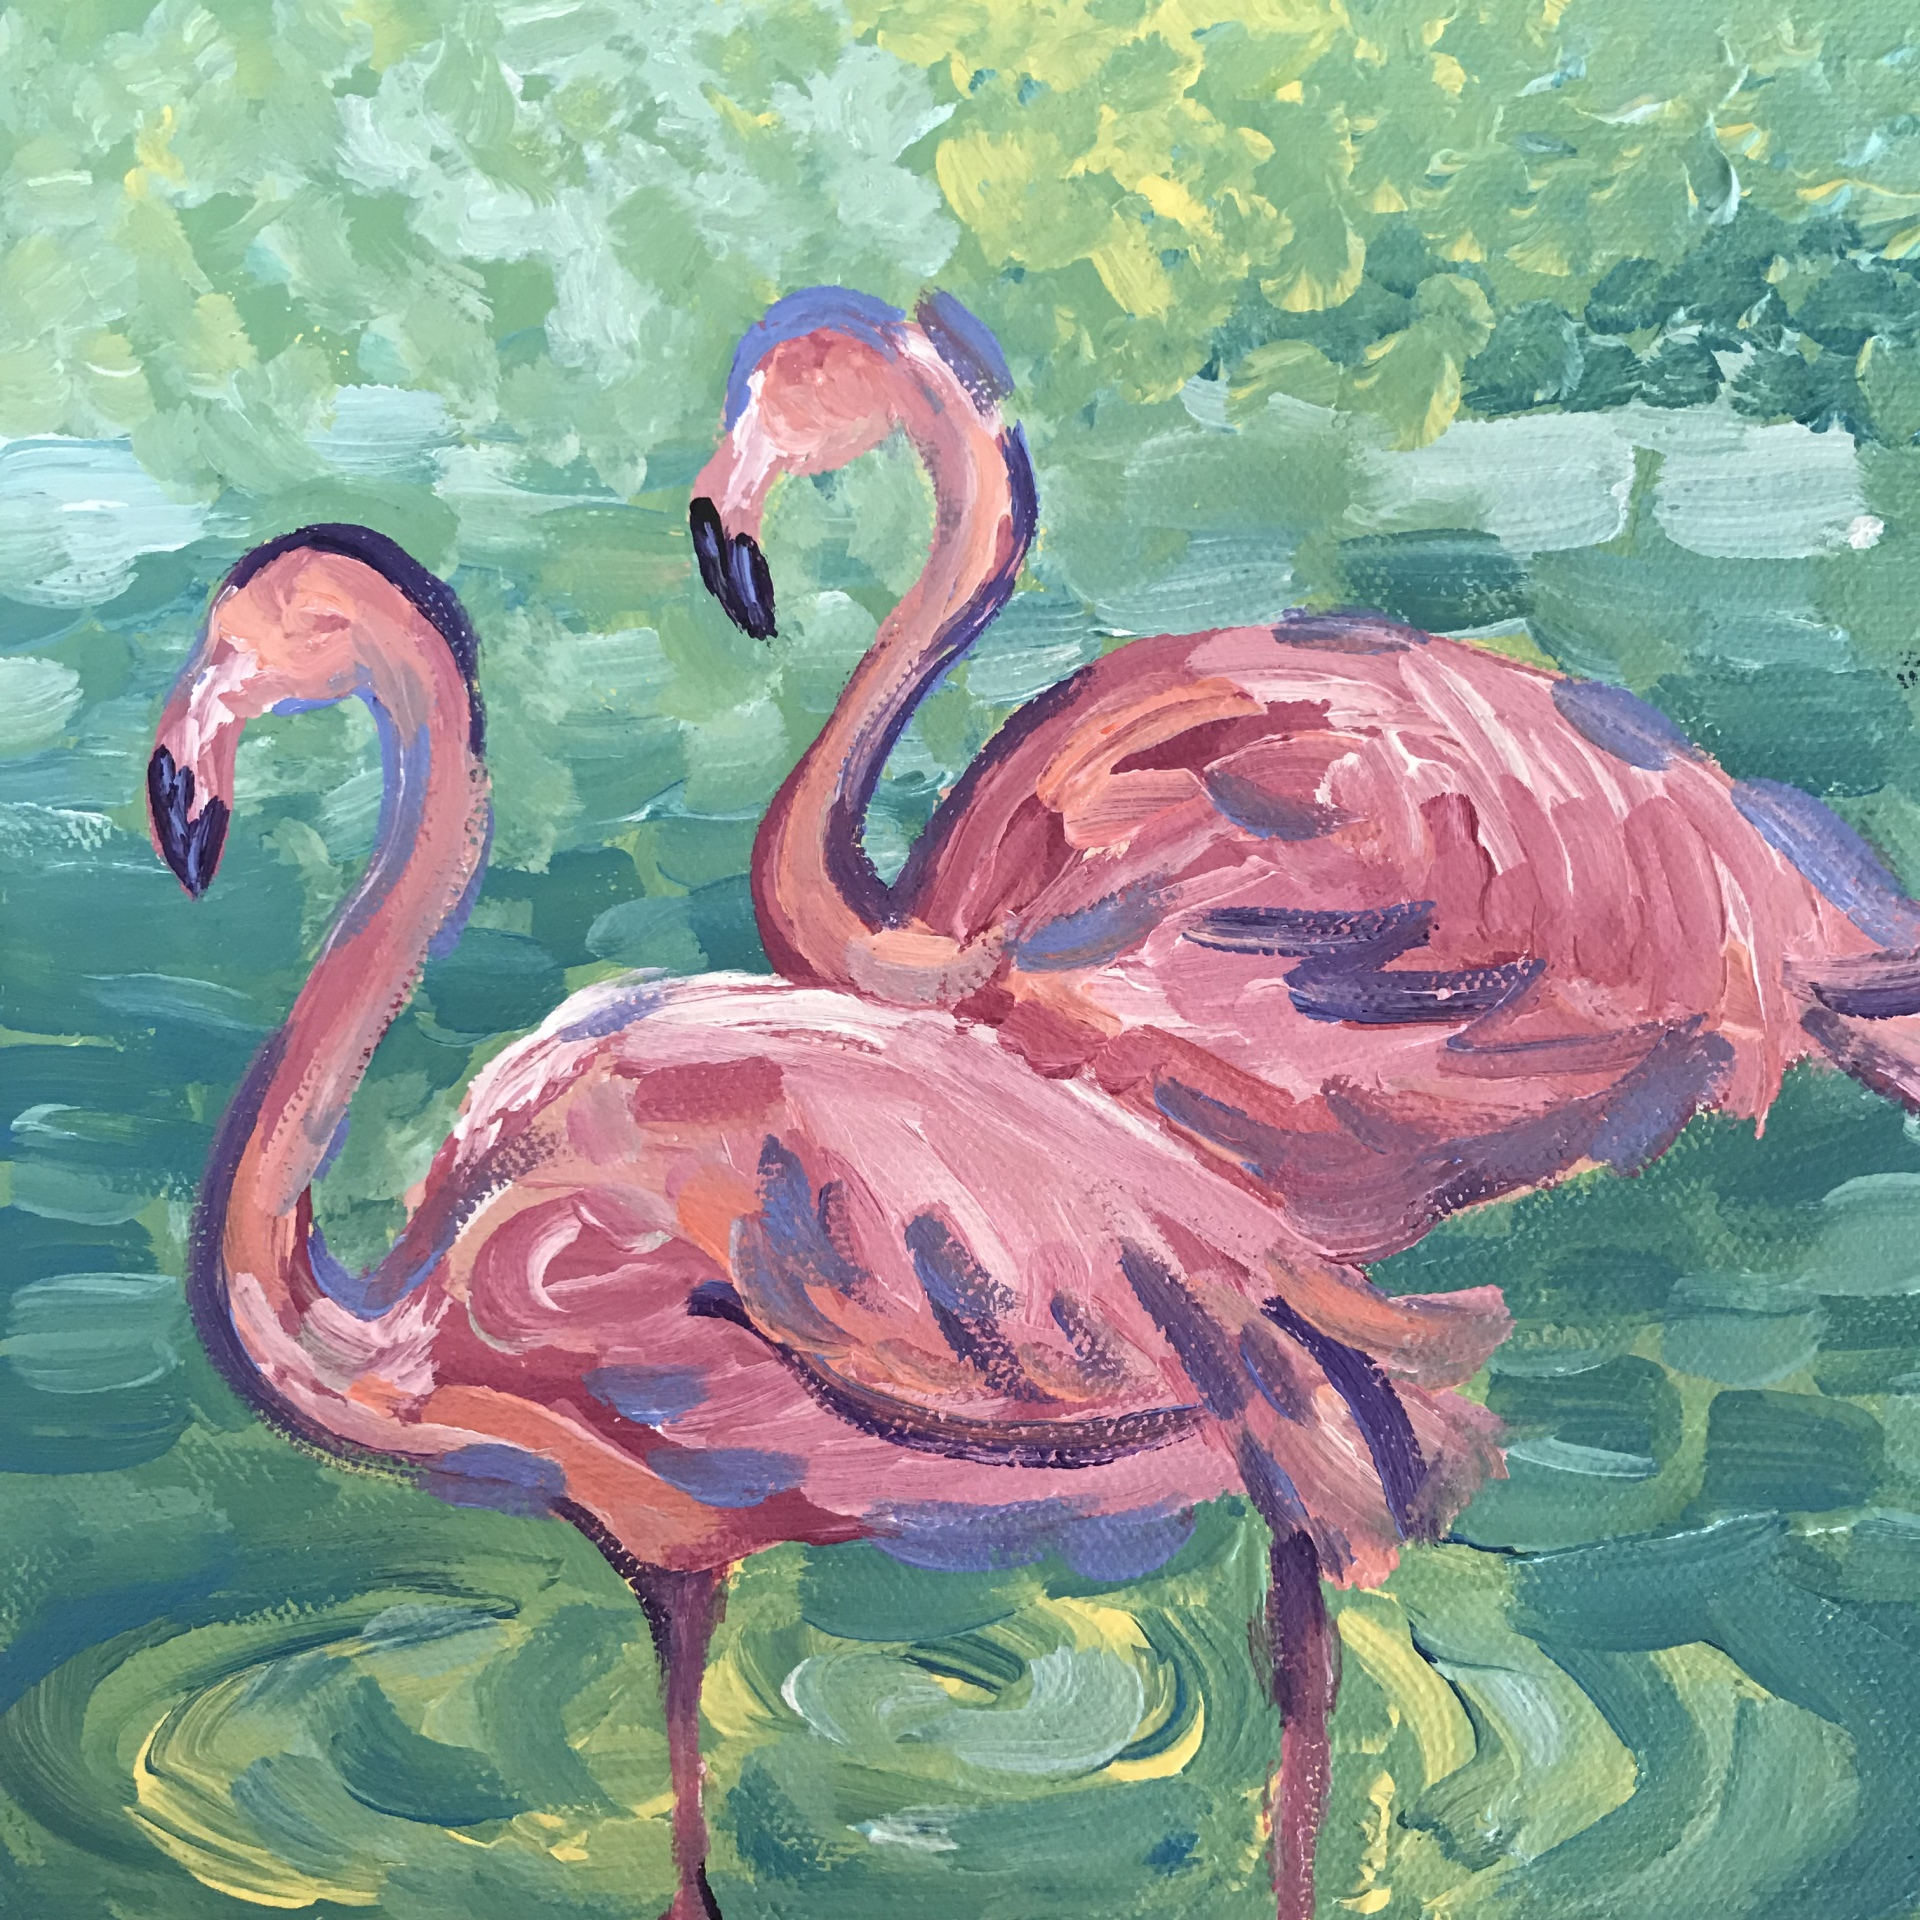 Day 20: Learning from FLAMINGOS